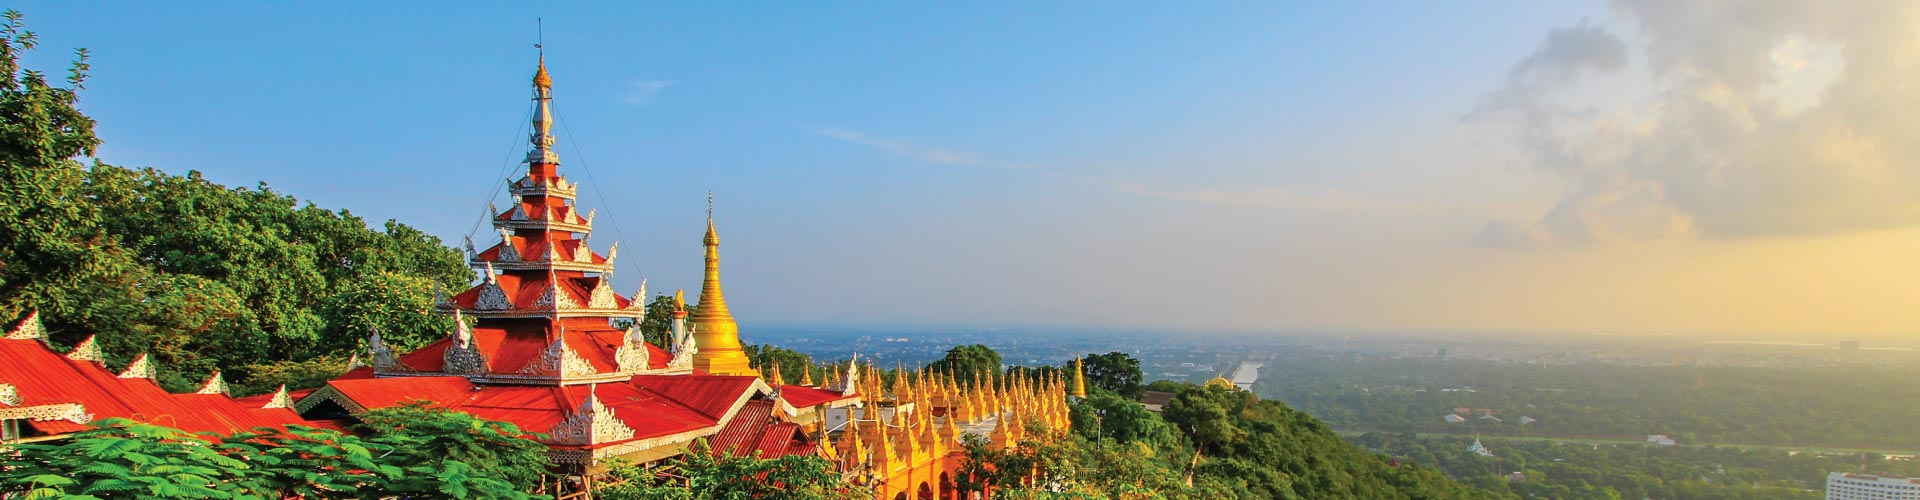 Mandalay, Bagan, Lake Inle